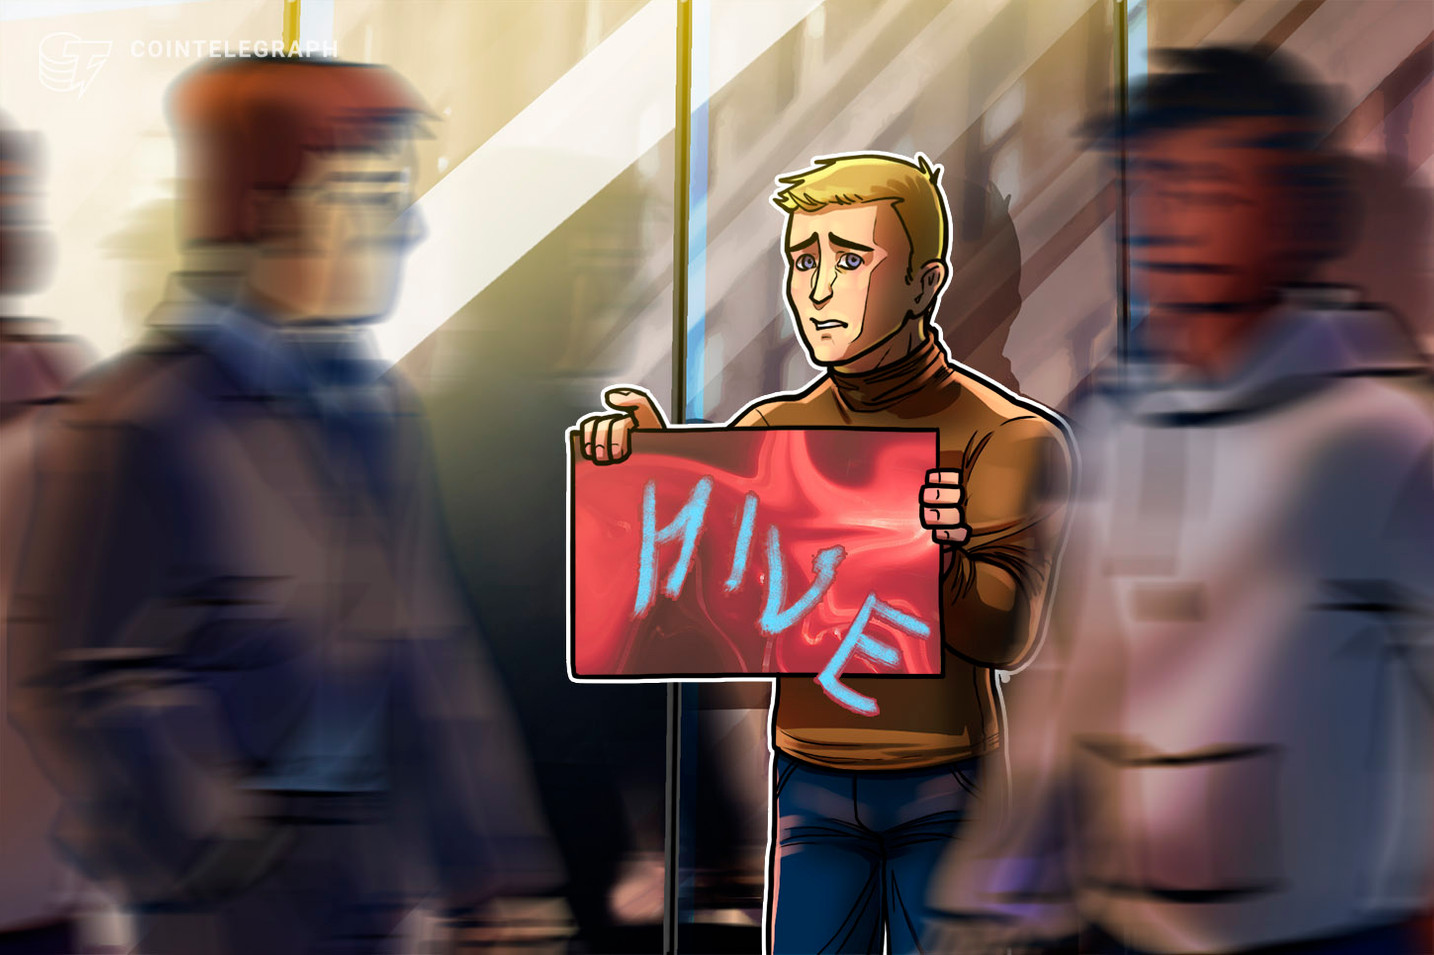 Canadian Miner Hive Blockchain Issues Cease and Desist to Steem Fork Hive